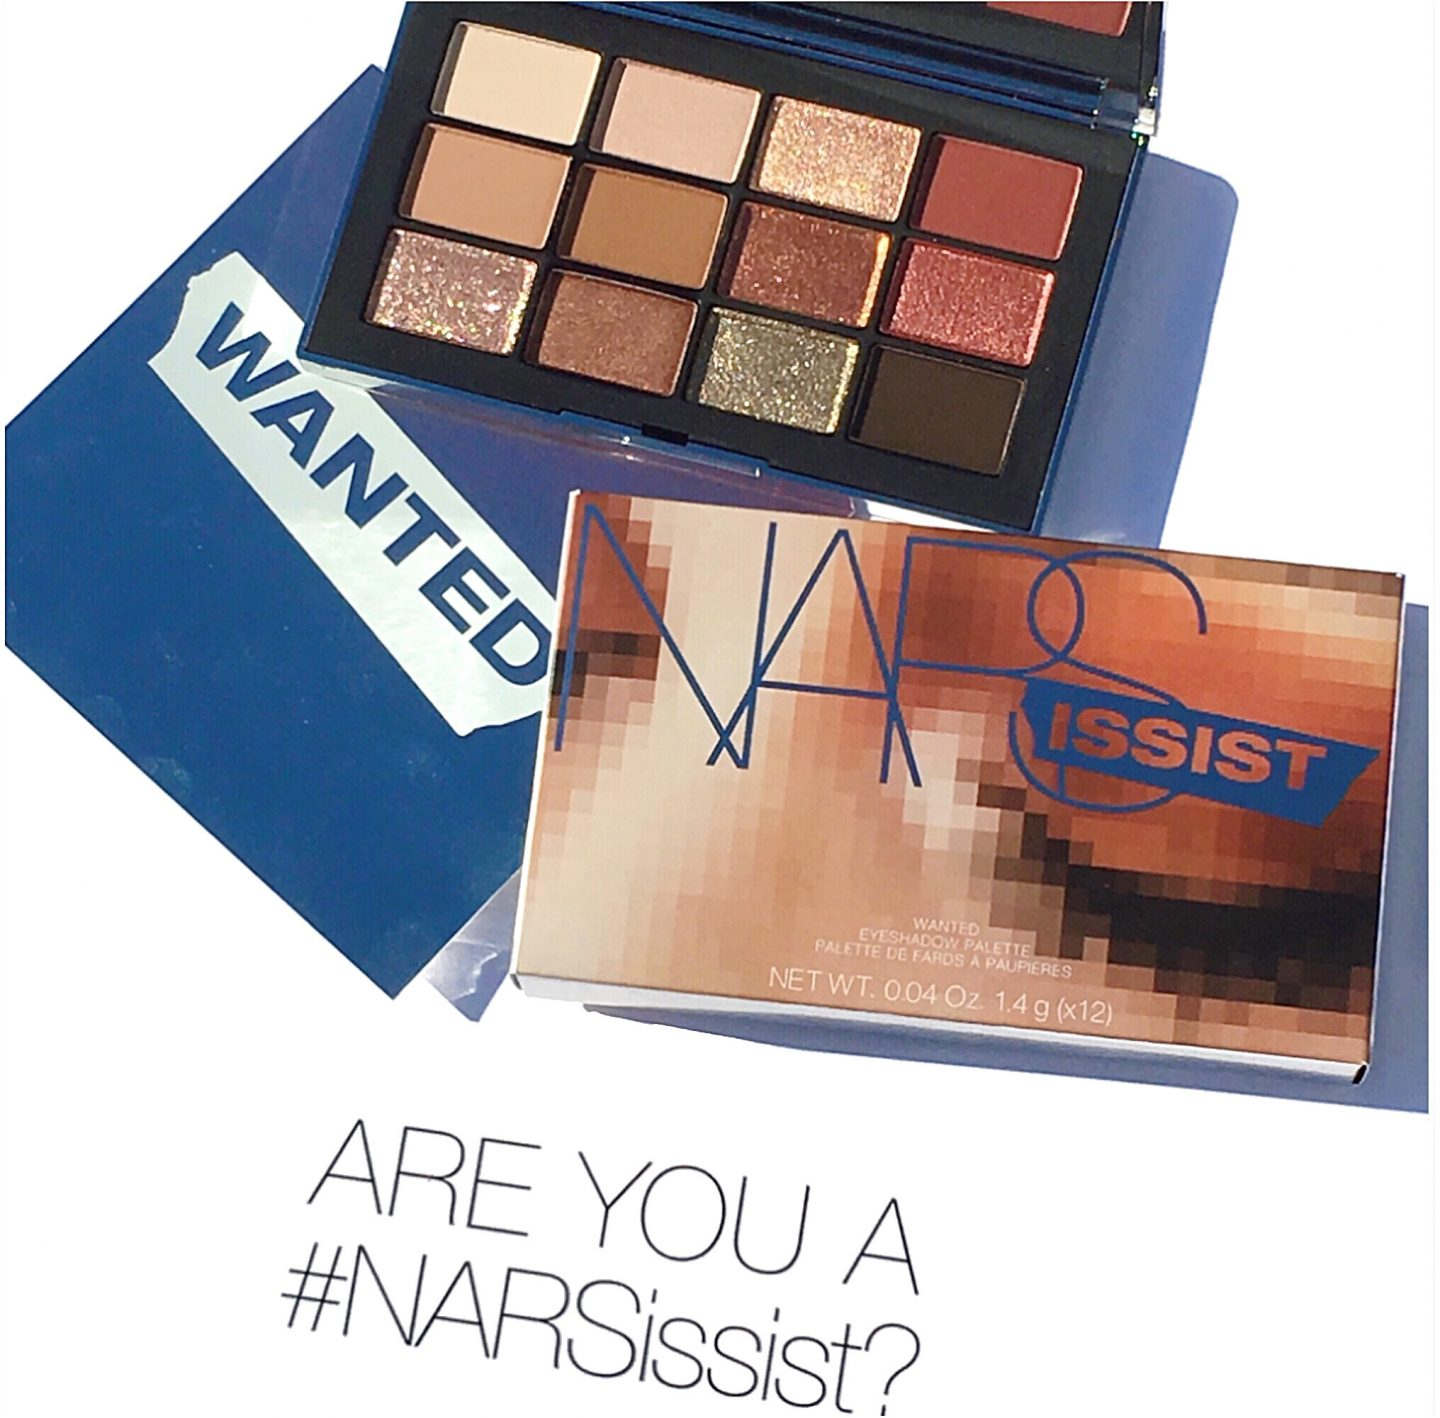 NARS Narsissist Wanted Eyeshadow Palette Overview & Swatches